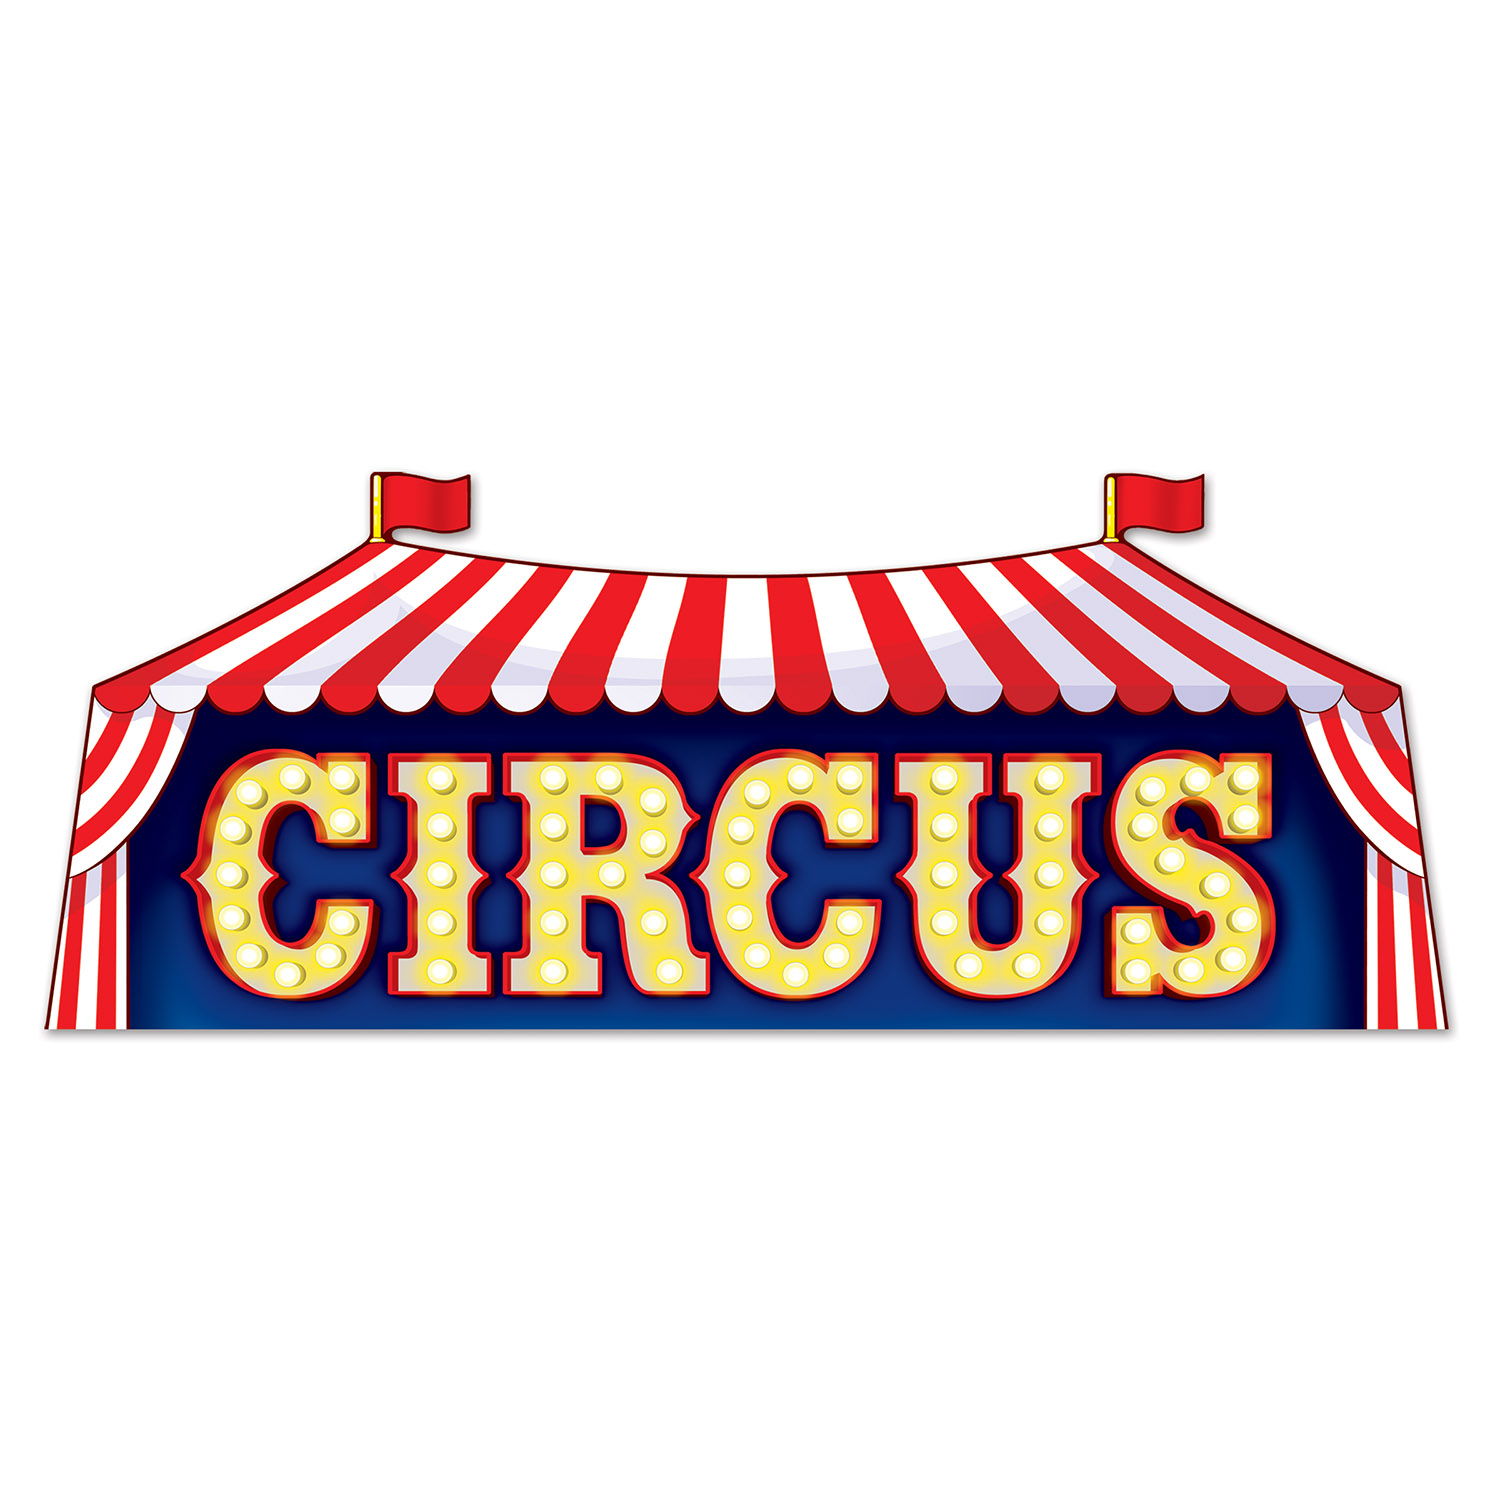 Circus Sign (Pack of 24) Circus sign, circus, new years eve, summer, decoration, wholesale, inexpensive, bulk